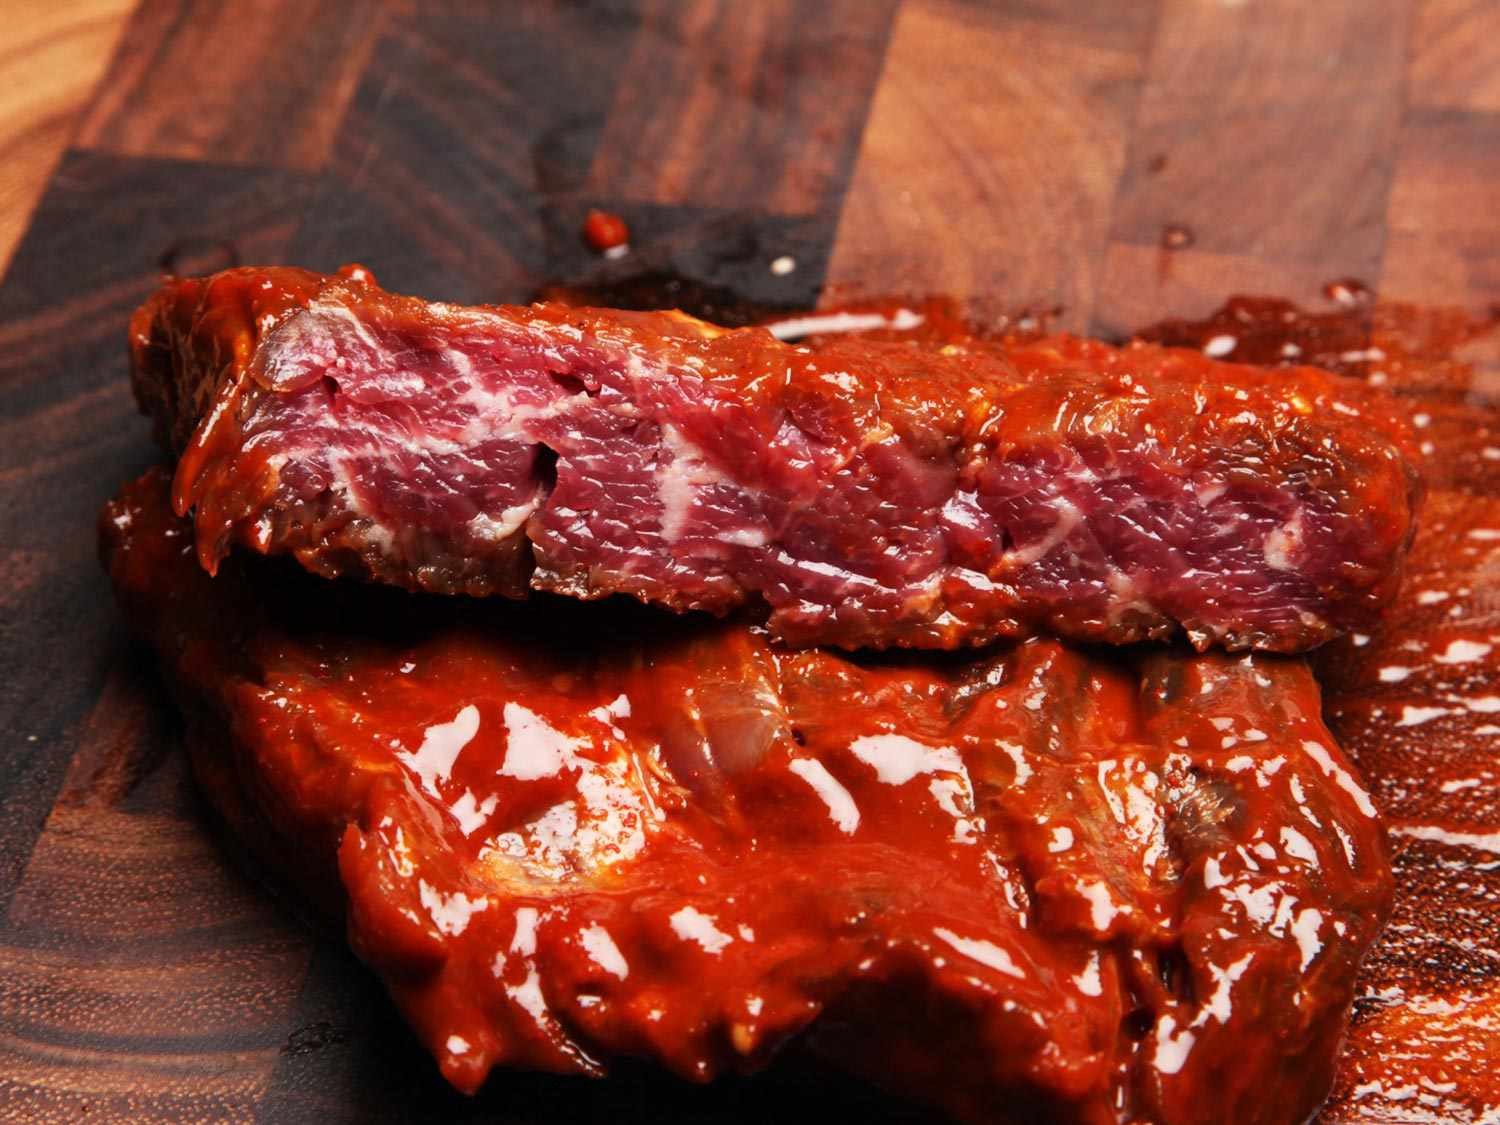 A marinated steak cut in half to reveal the small depth to which the marinade had penetrated.